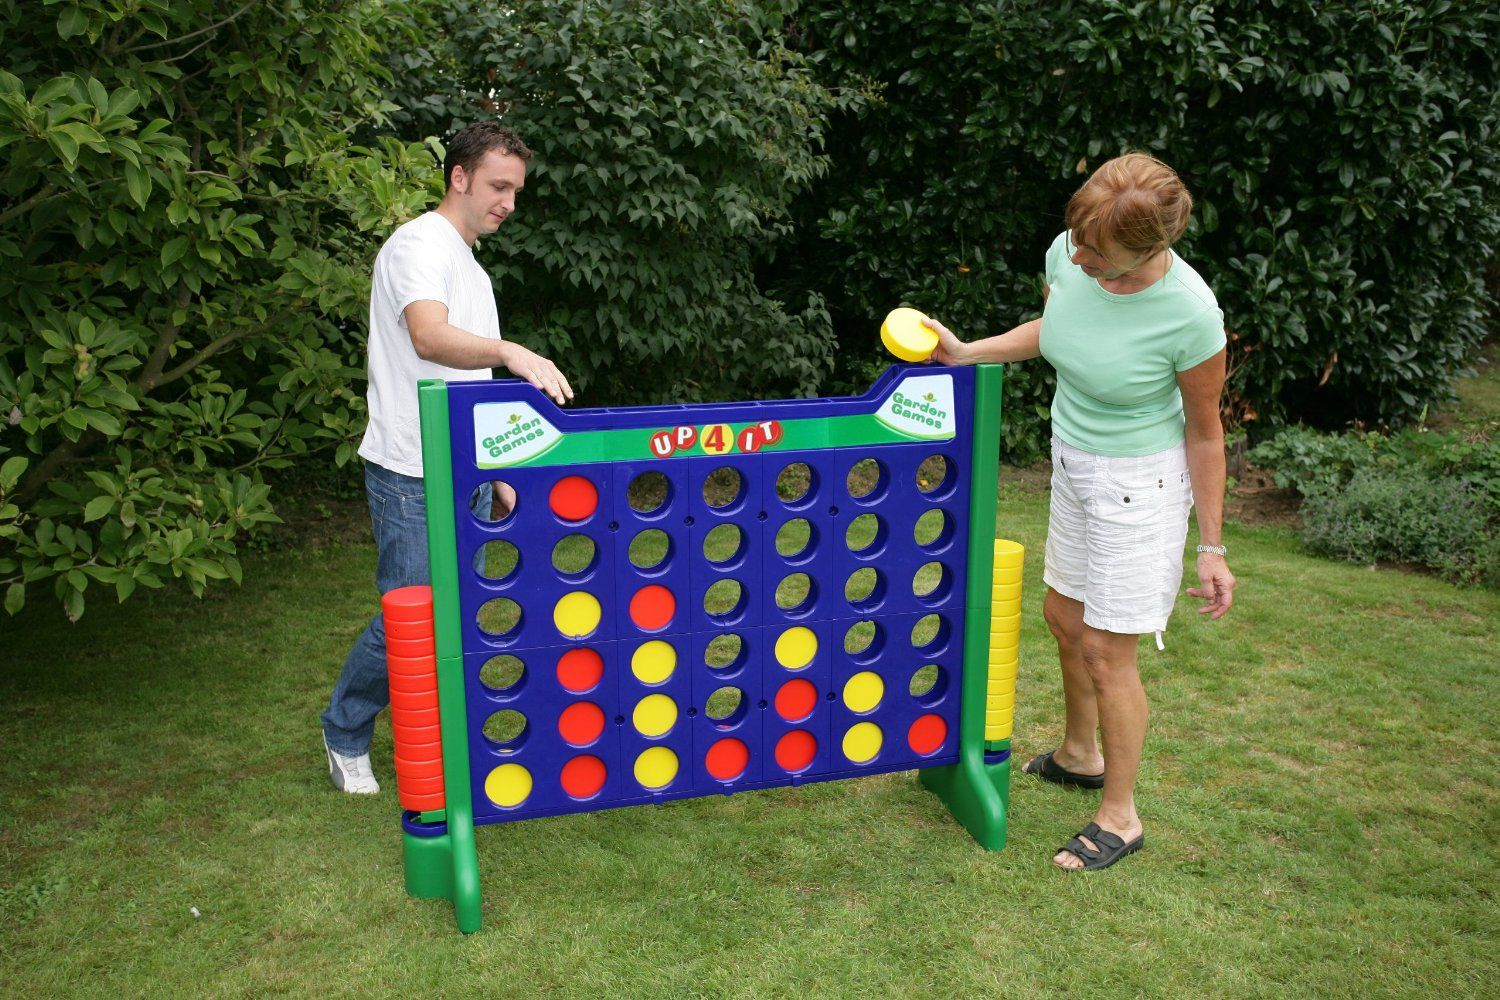 Amazon Com Giant Connect 4 Up 4 It Game Toys Games Giant Games Connect Games Yard Games